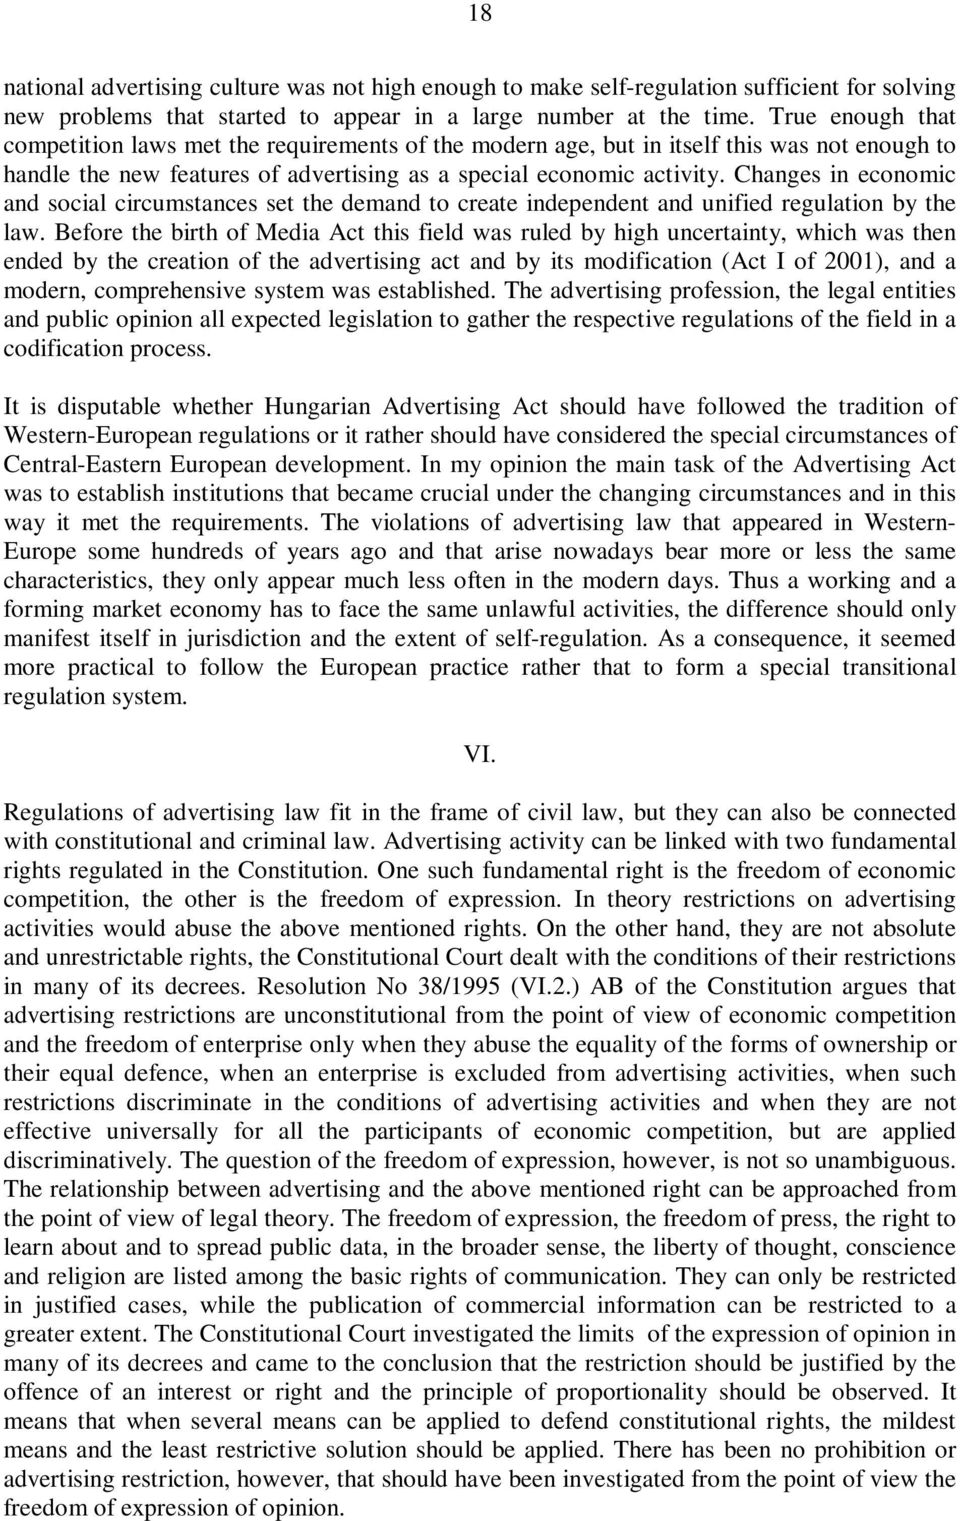 Changes in economic and social circumstances set the demand to create independent and unified regulation by the law.